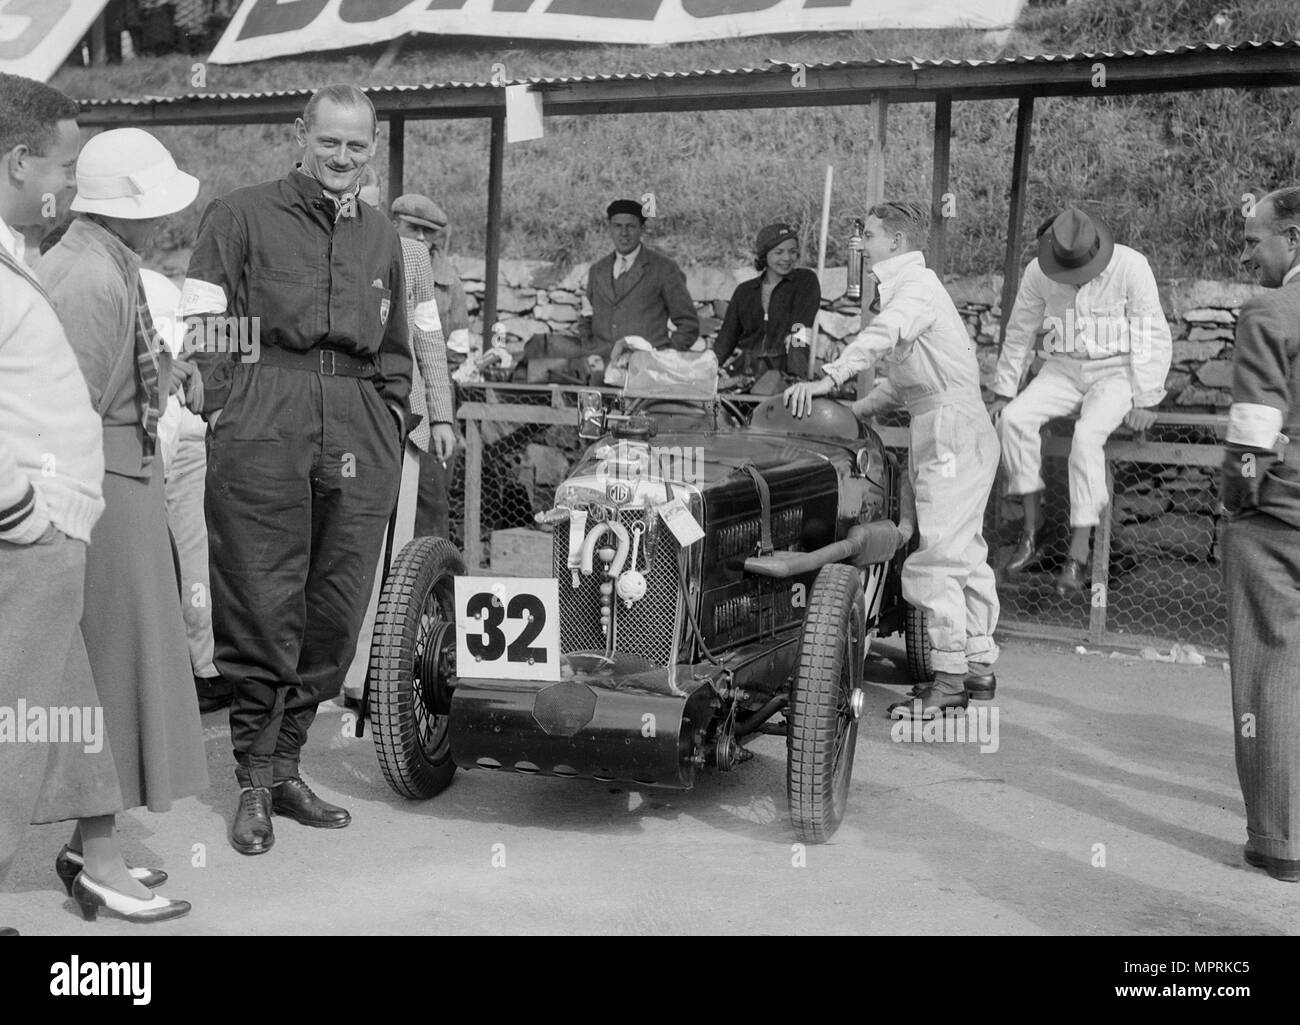 MG C type Midget of Goldie Gardner at the RAC TT Race, Ards Circuit, Belfast, 1932. Artist: Bill Brunell. - Stock Image